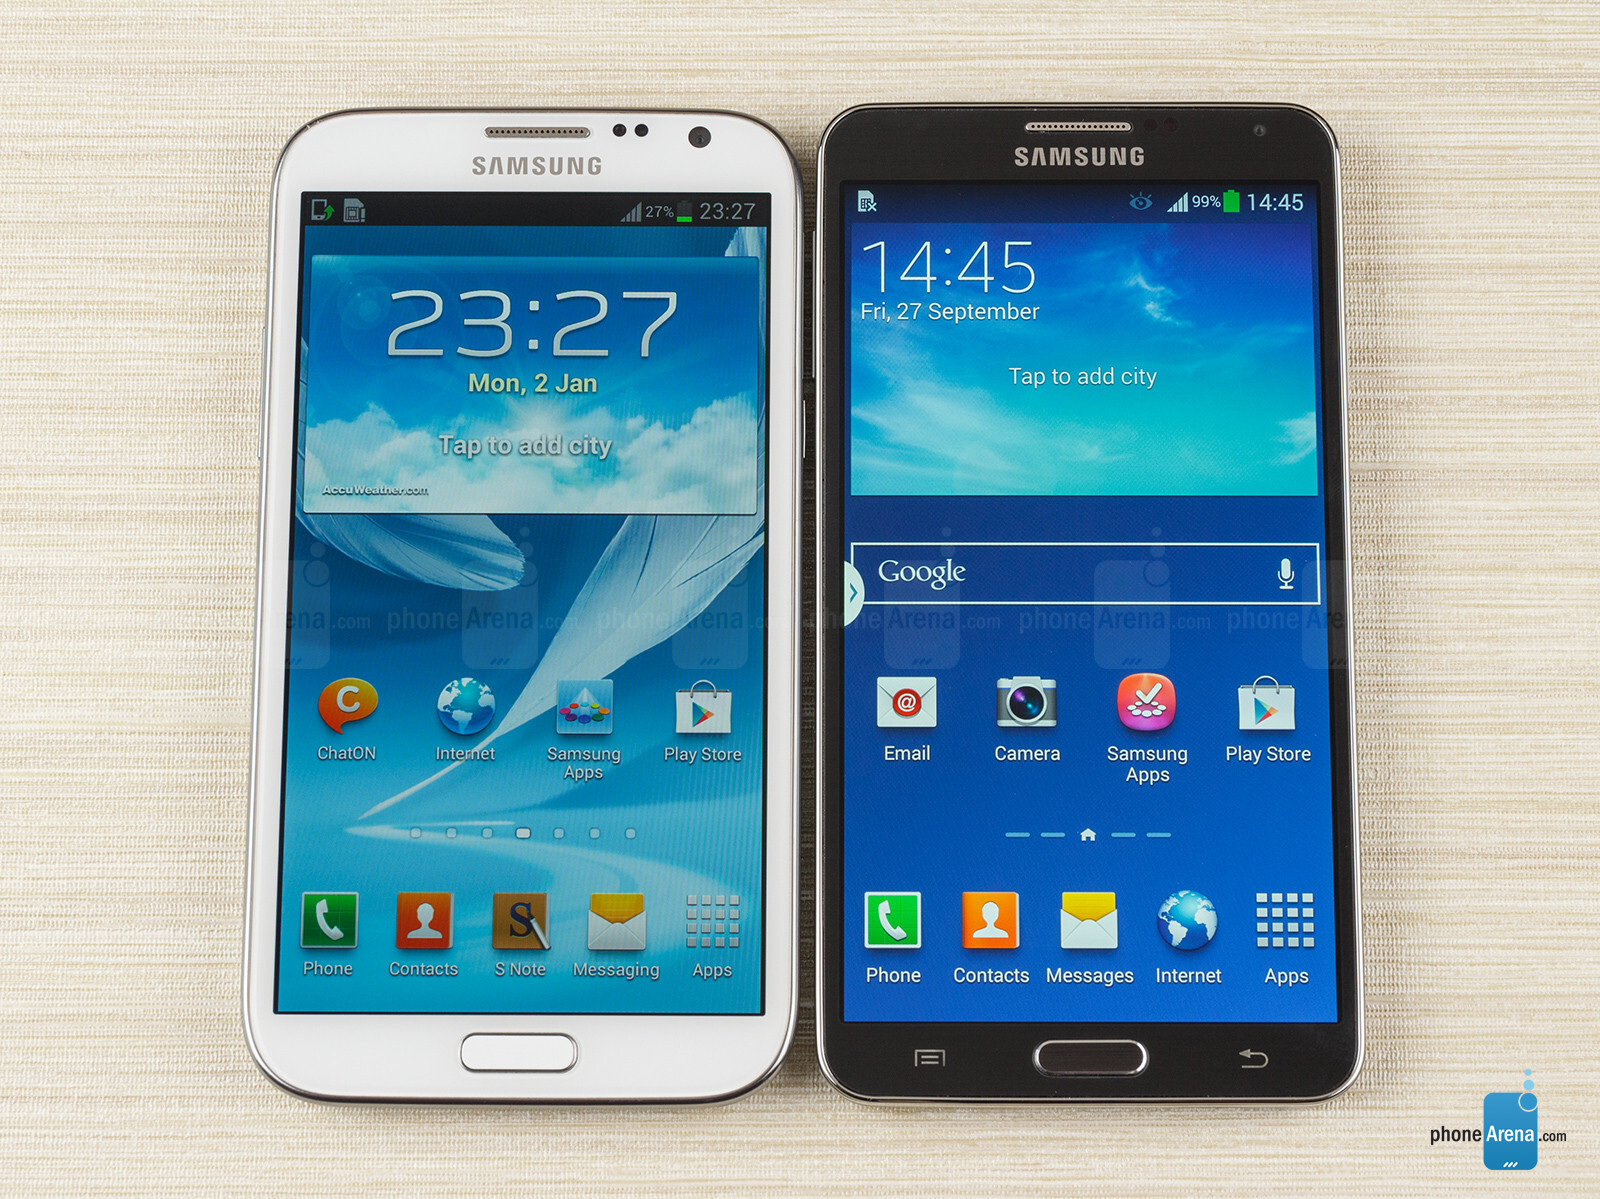 Samsung GALAXY Note II AT&T specs - PhoneArena